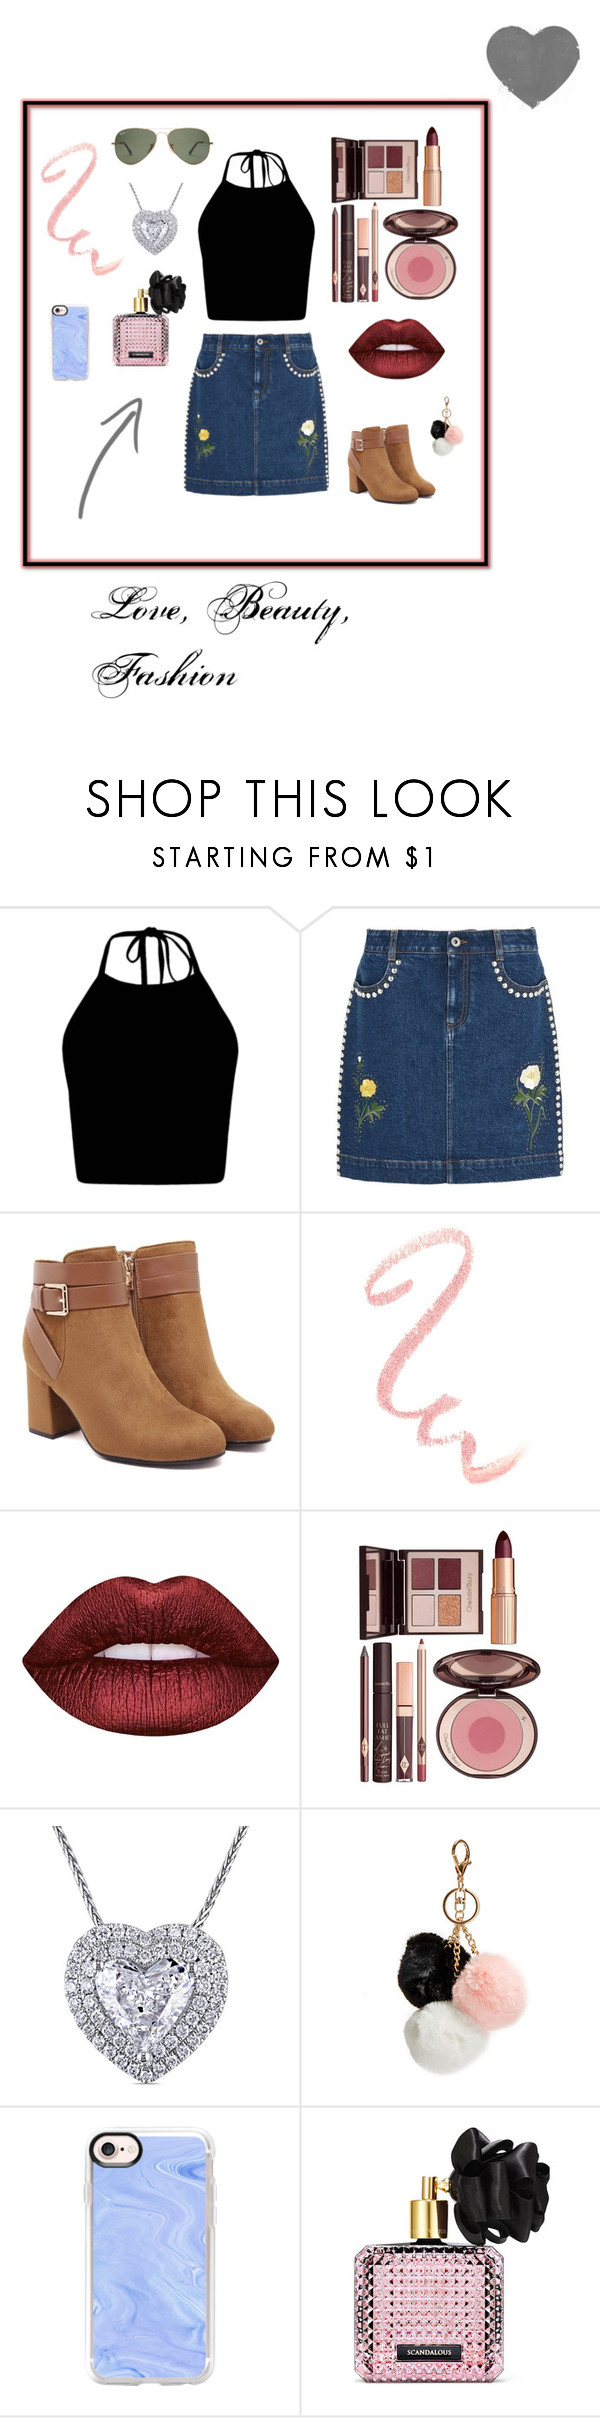 """""""❤️"""" by shoppin4ever ❤ liked on Polyvore featuring STELLA McCARTNEY, Lime Crime, Charlotte Tilbury, GUESS, Casetify and Victoria's Secret"""